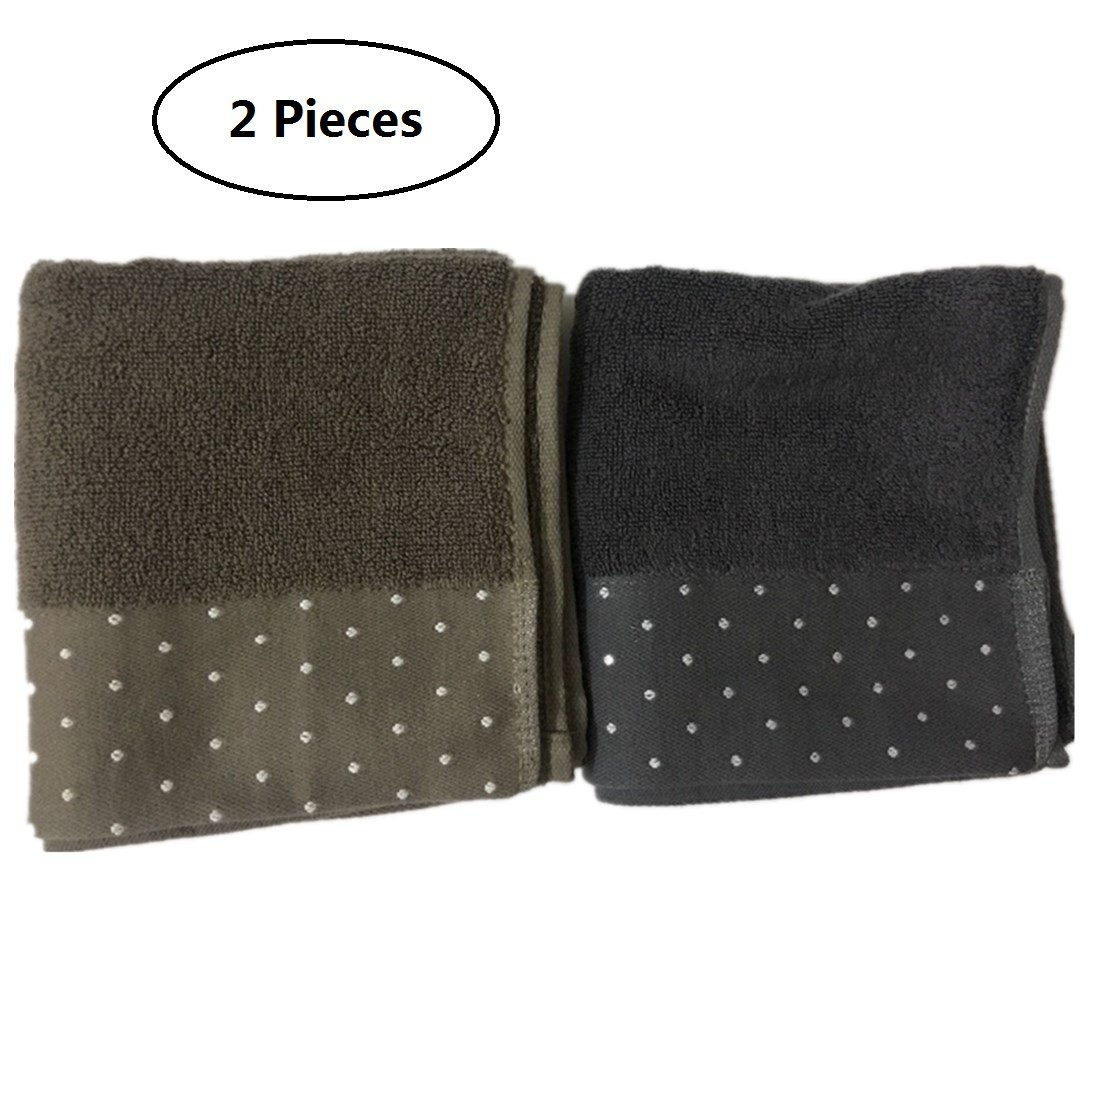 Tsuen Cotton Large Hand Towels Set, 2 Pack Polka Dots Pattern - 13.4 x 29 Inches Soft Cotton Highly Absorbent Hand Towels for Bathroom Hotel Gym Spa and Kitchen, Blue and Brown